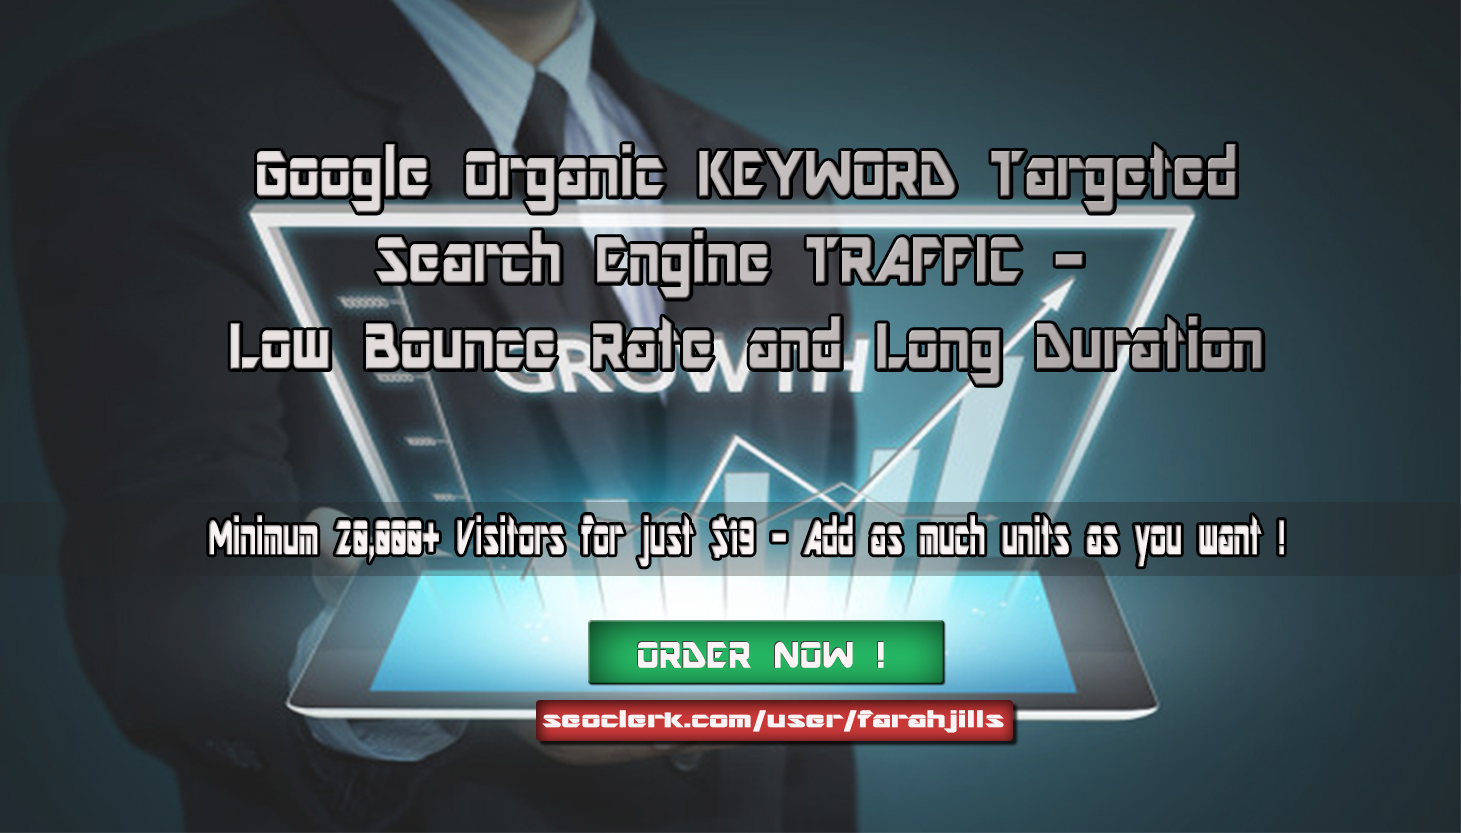 5K Keyword Target Organic TRAFFIC to Increase Website...